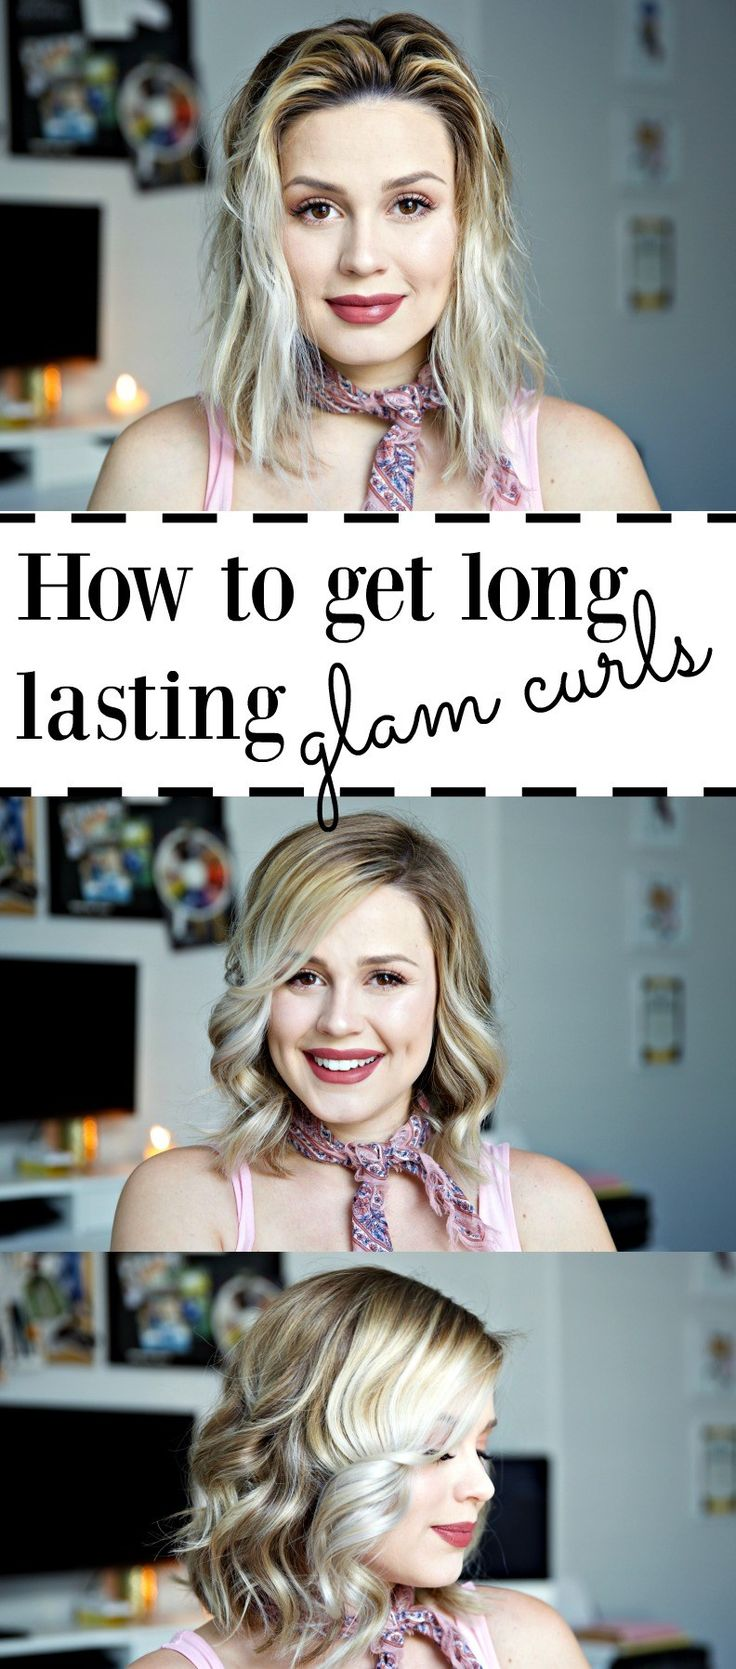 How to get glam curls | How to have long lasting curls | Bob curls | Easy curls | Uptown with Elly Brown